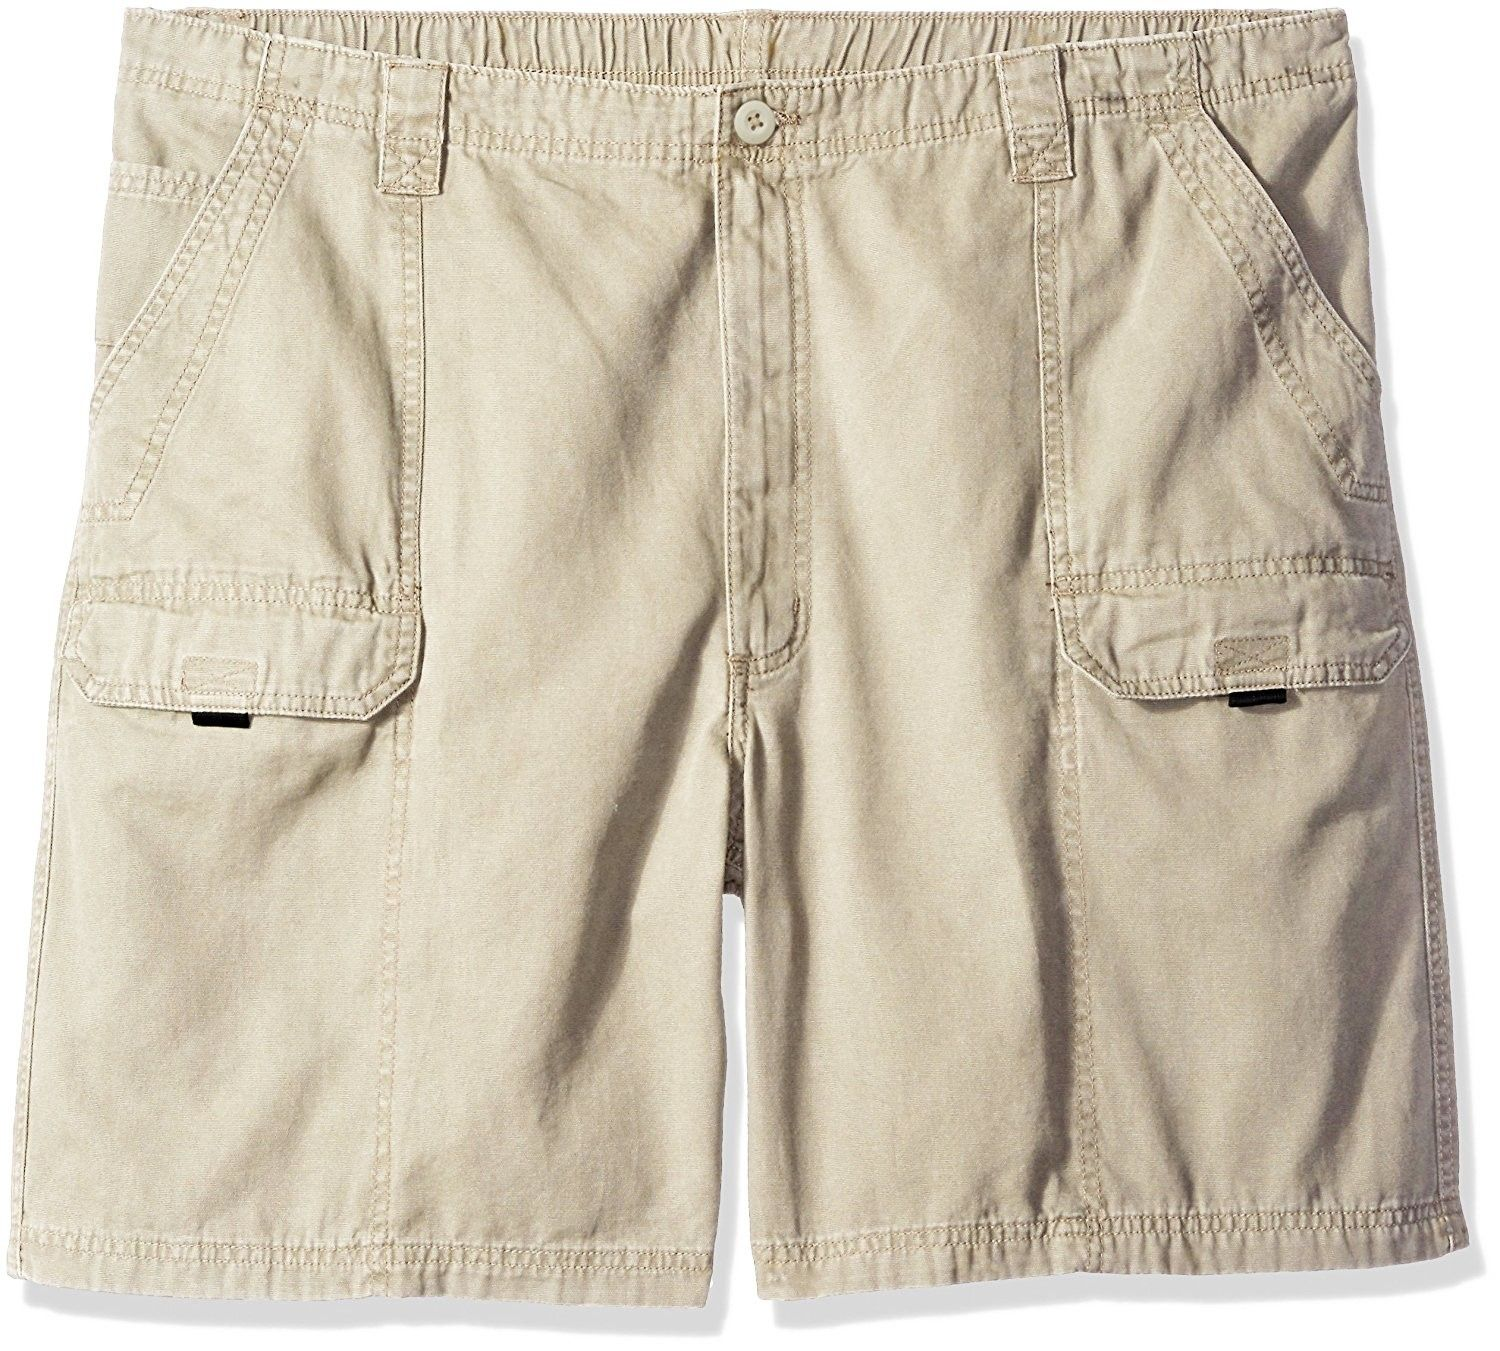 20bc1b8995 Men's Big and Tall Authentics Utility Hiker Short - Fossil Rock -  CM12DF1L5GP,Men's Clothing, Shorts #men #clothing #fashion #style #gifts  #outfits #Shorts